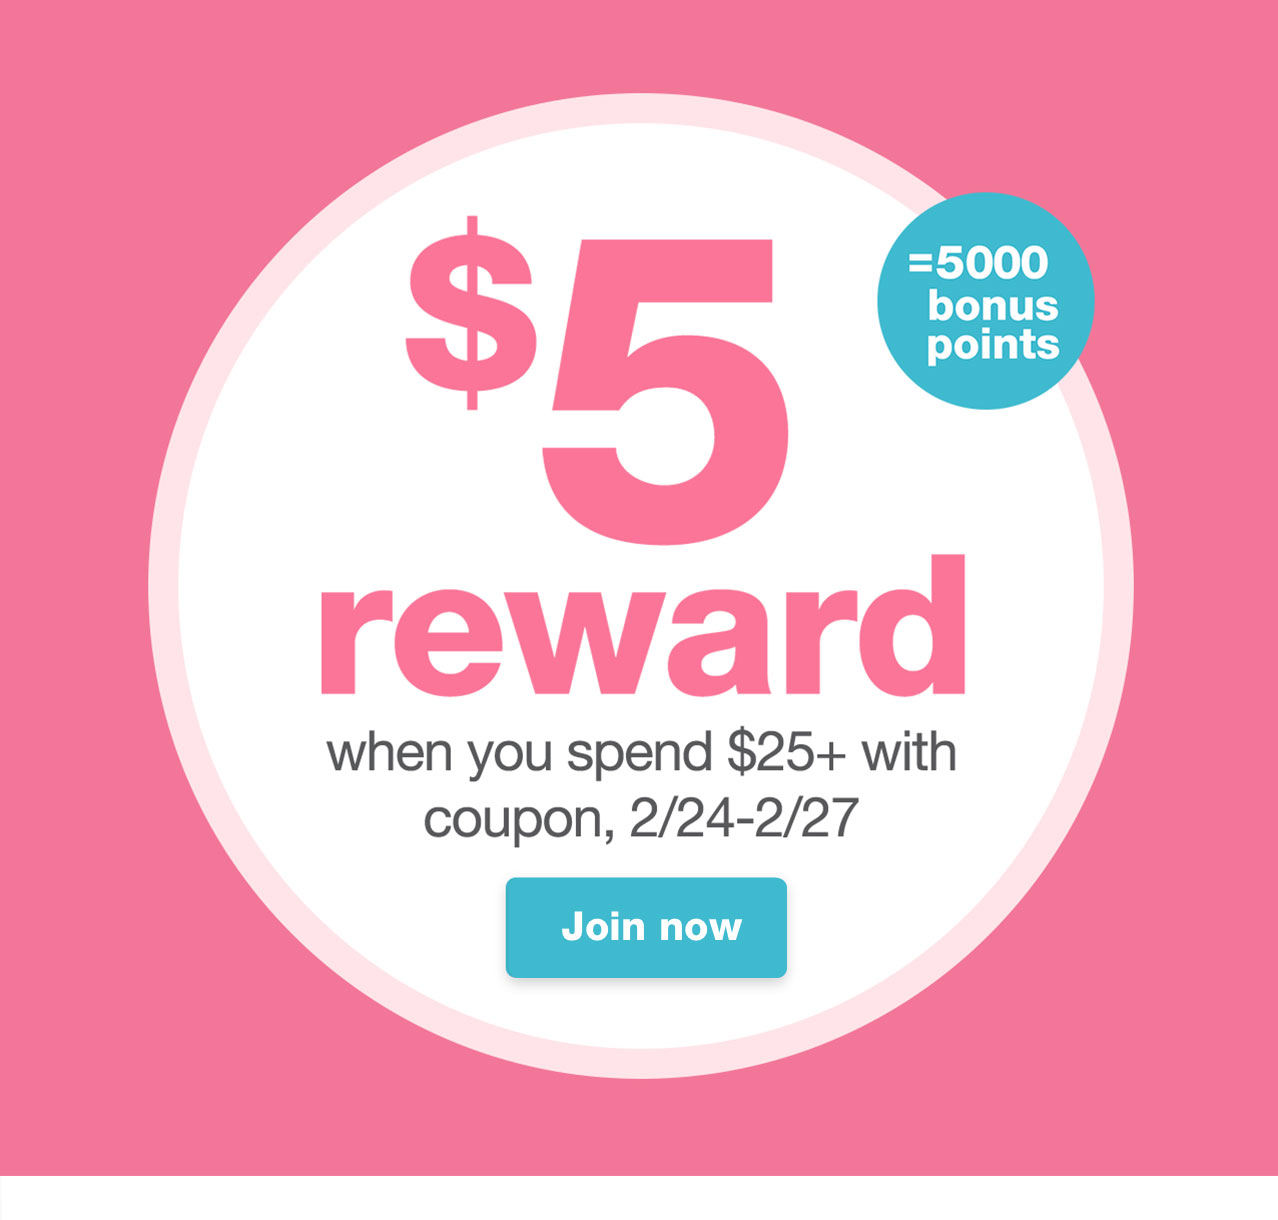 $5 reward (=5000 bonus points) when you spend $25+ with coupon, 2/24-2/27. Join now